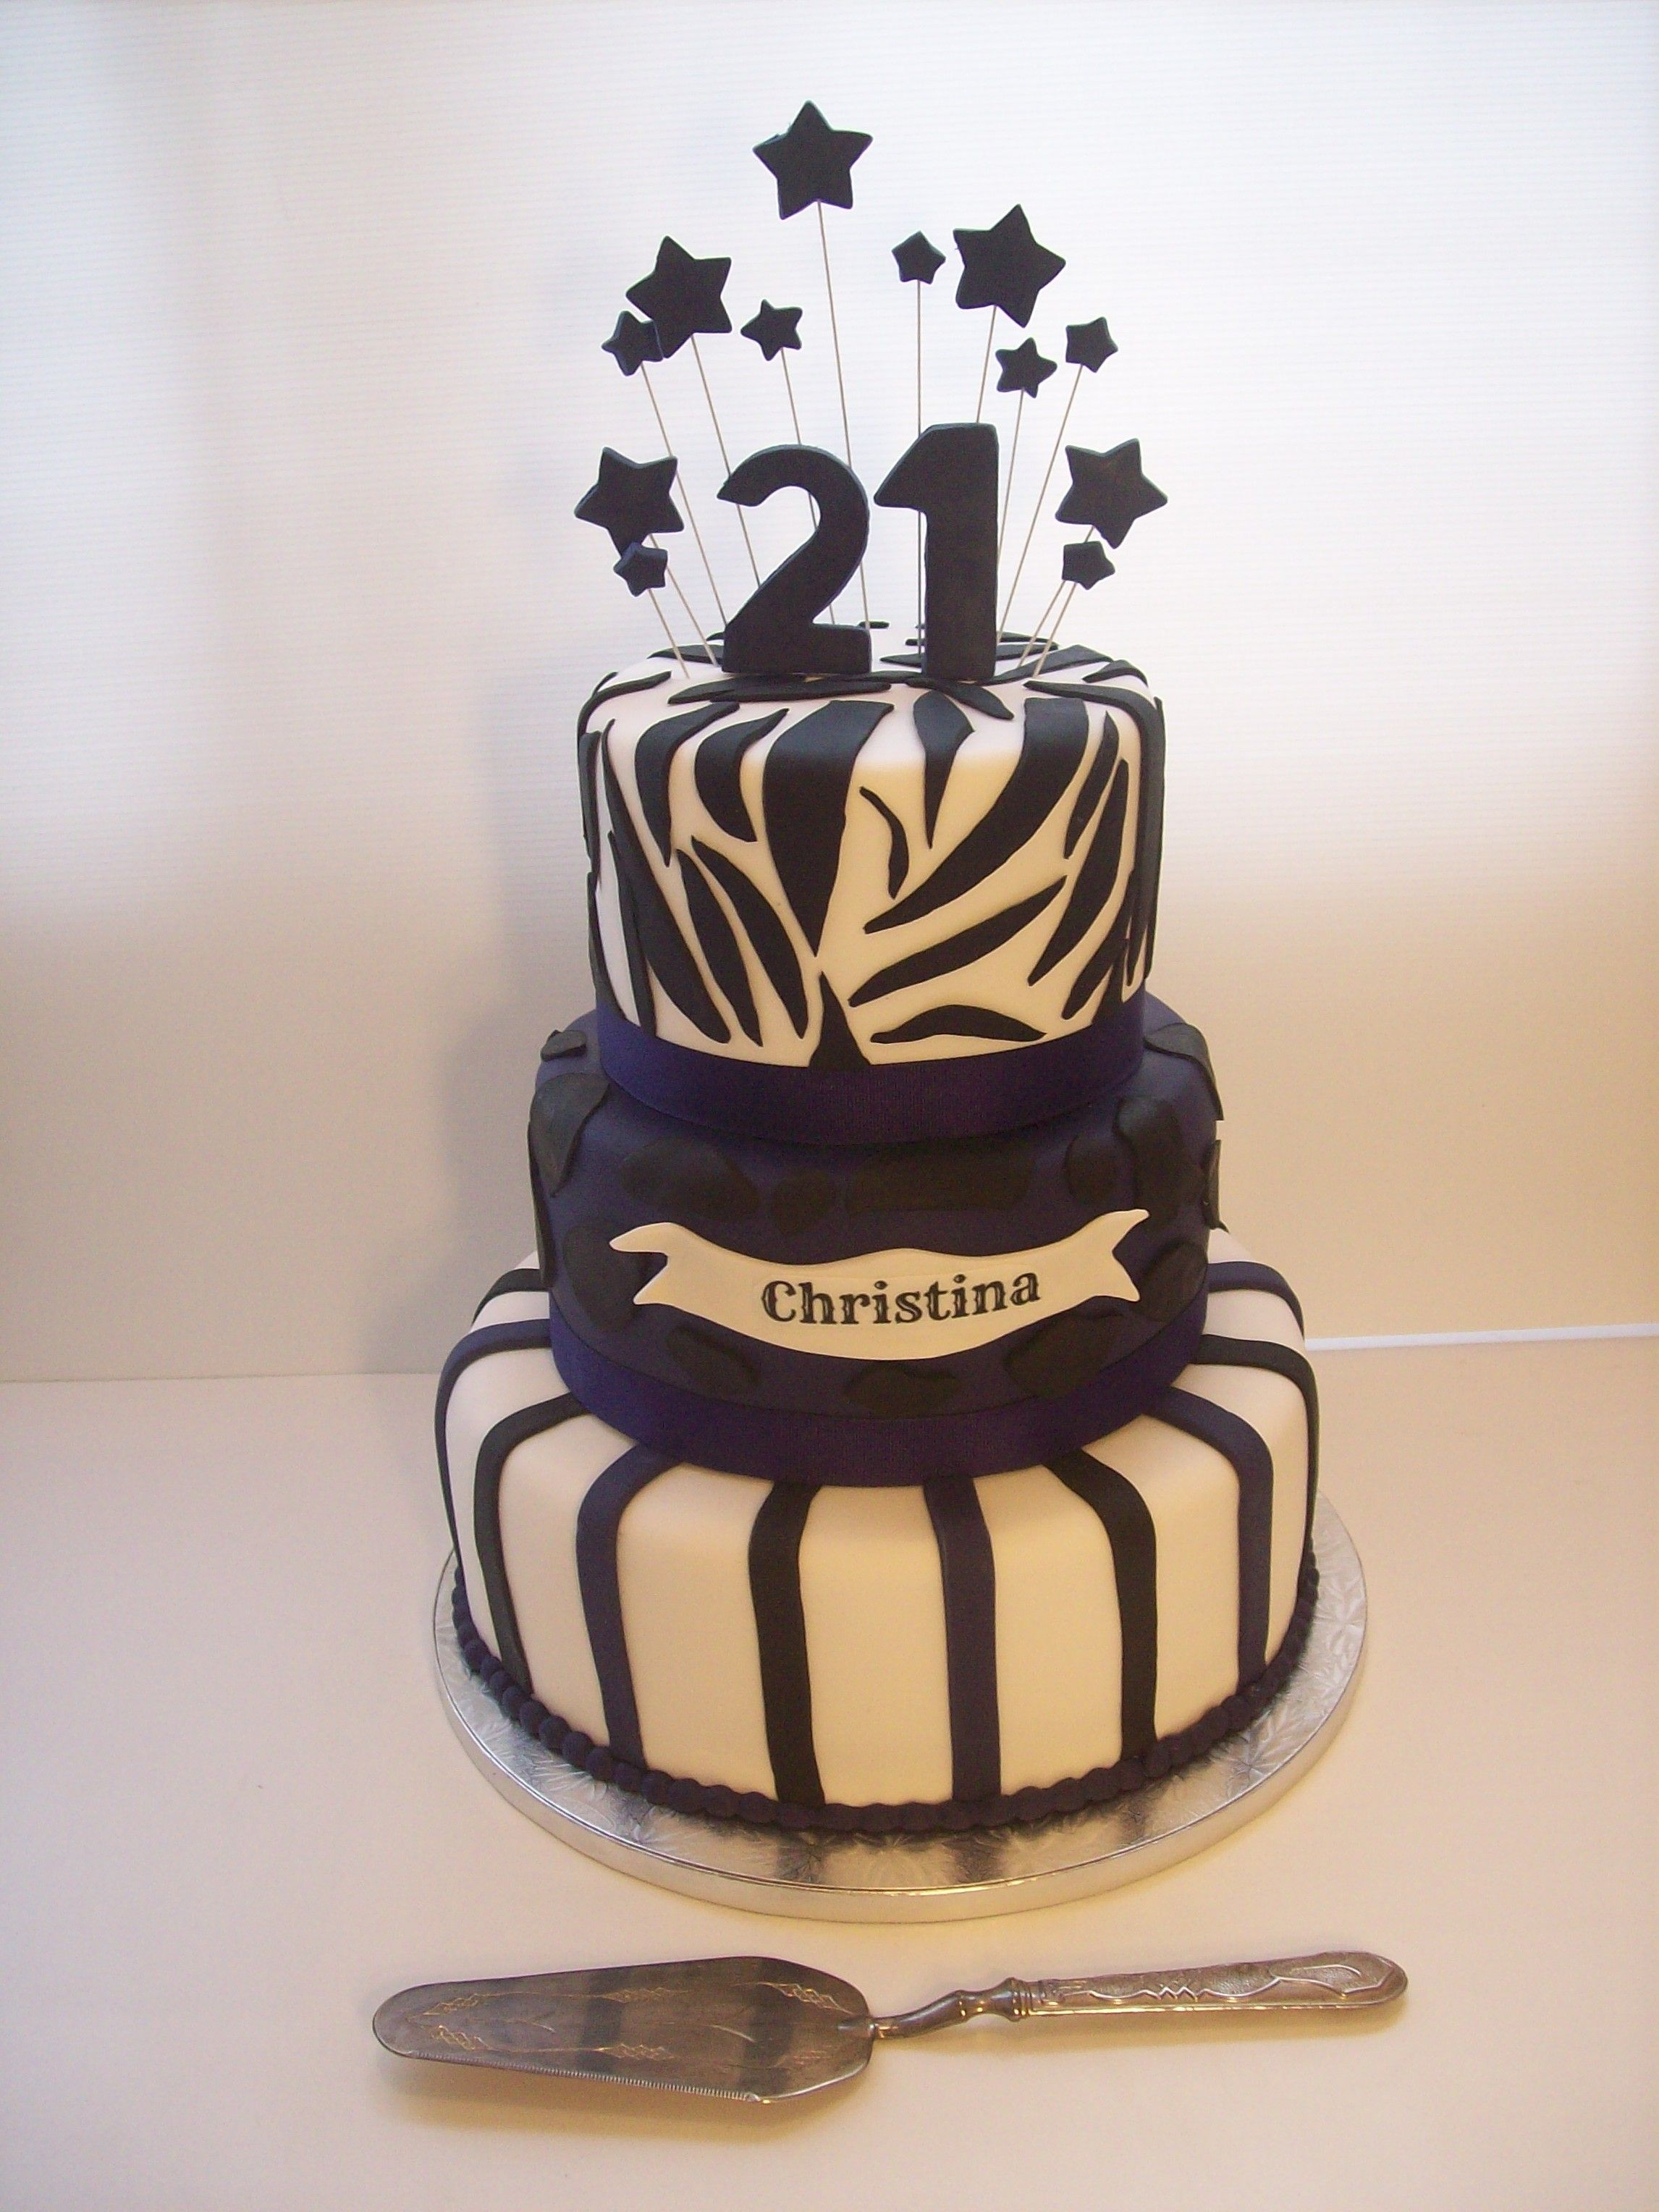 large 3 tier 21st cake auckland 550 21st cakes auckland on specialty birthday cakes auckland